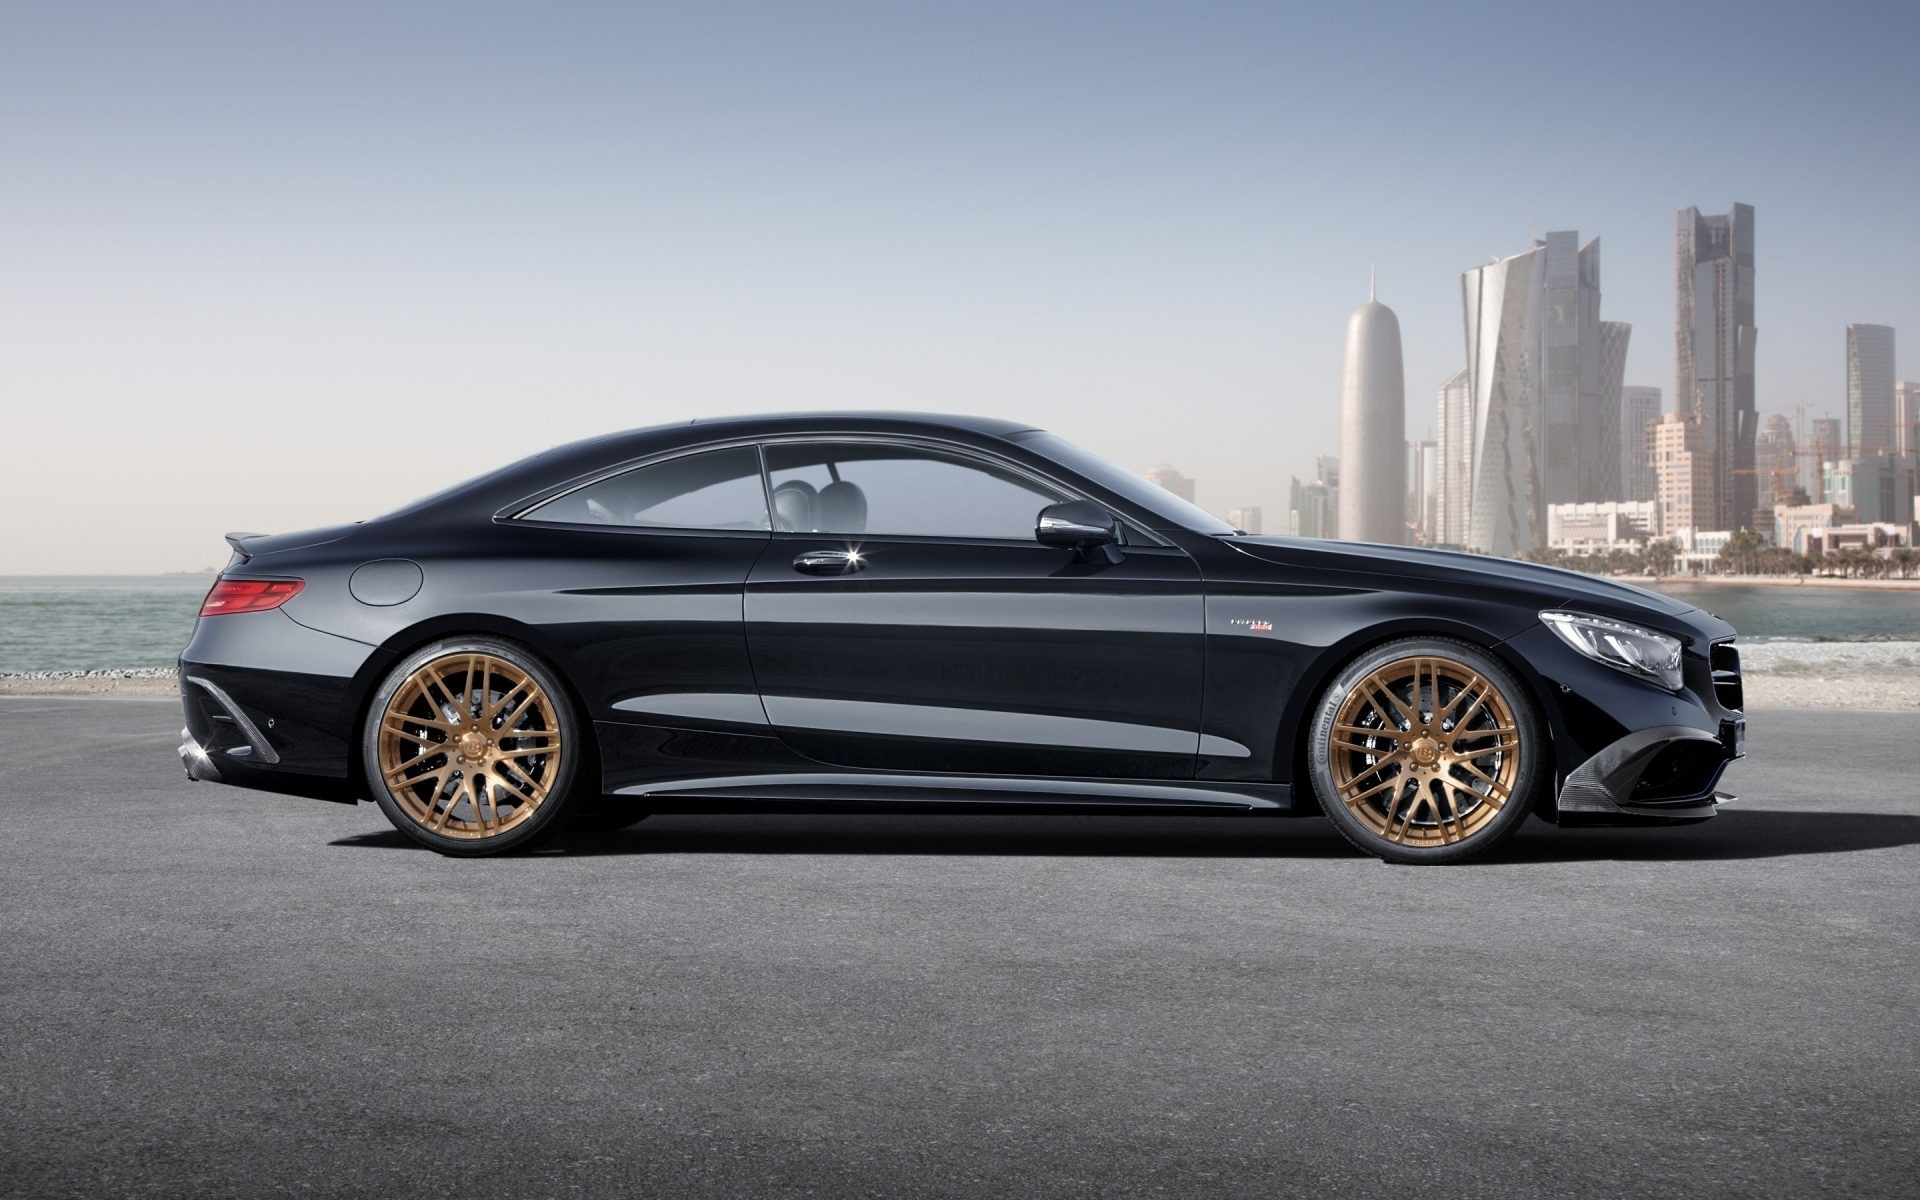 Mercedes Brabus Wallpaper 65 Images HD Wallpapers Download free images and photos [musssic.tk]